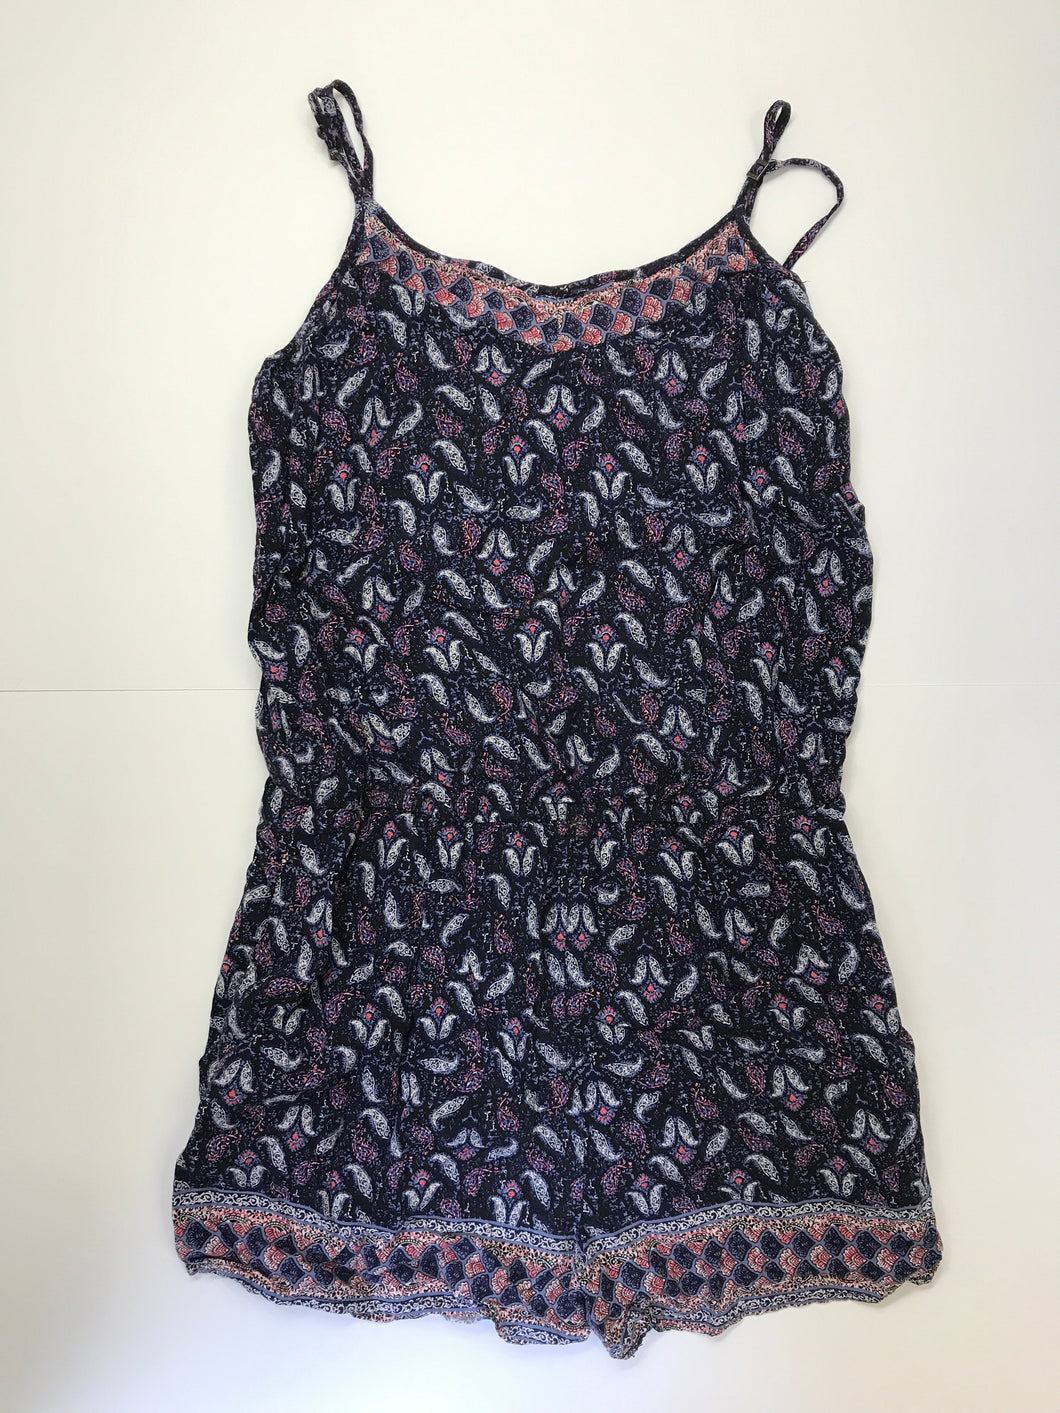 Gently Used Women's Garage Romper Size XS